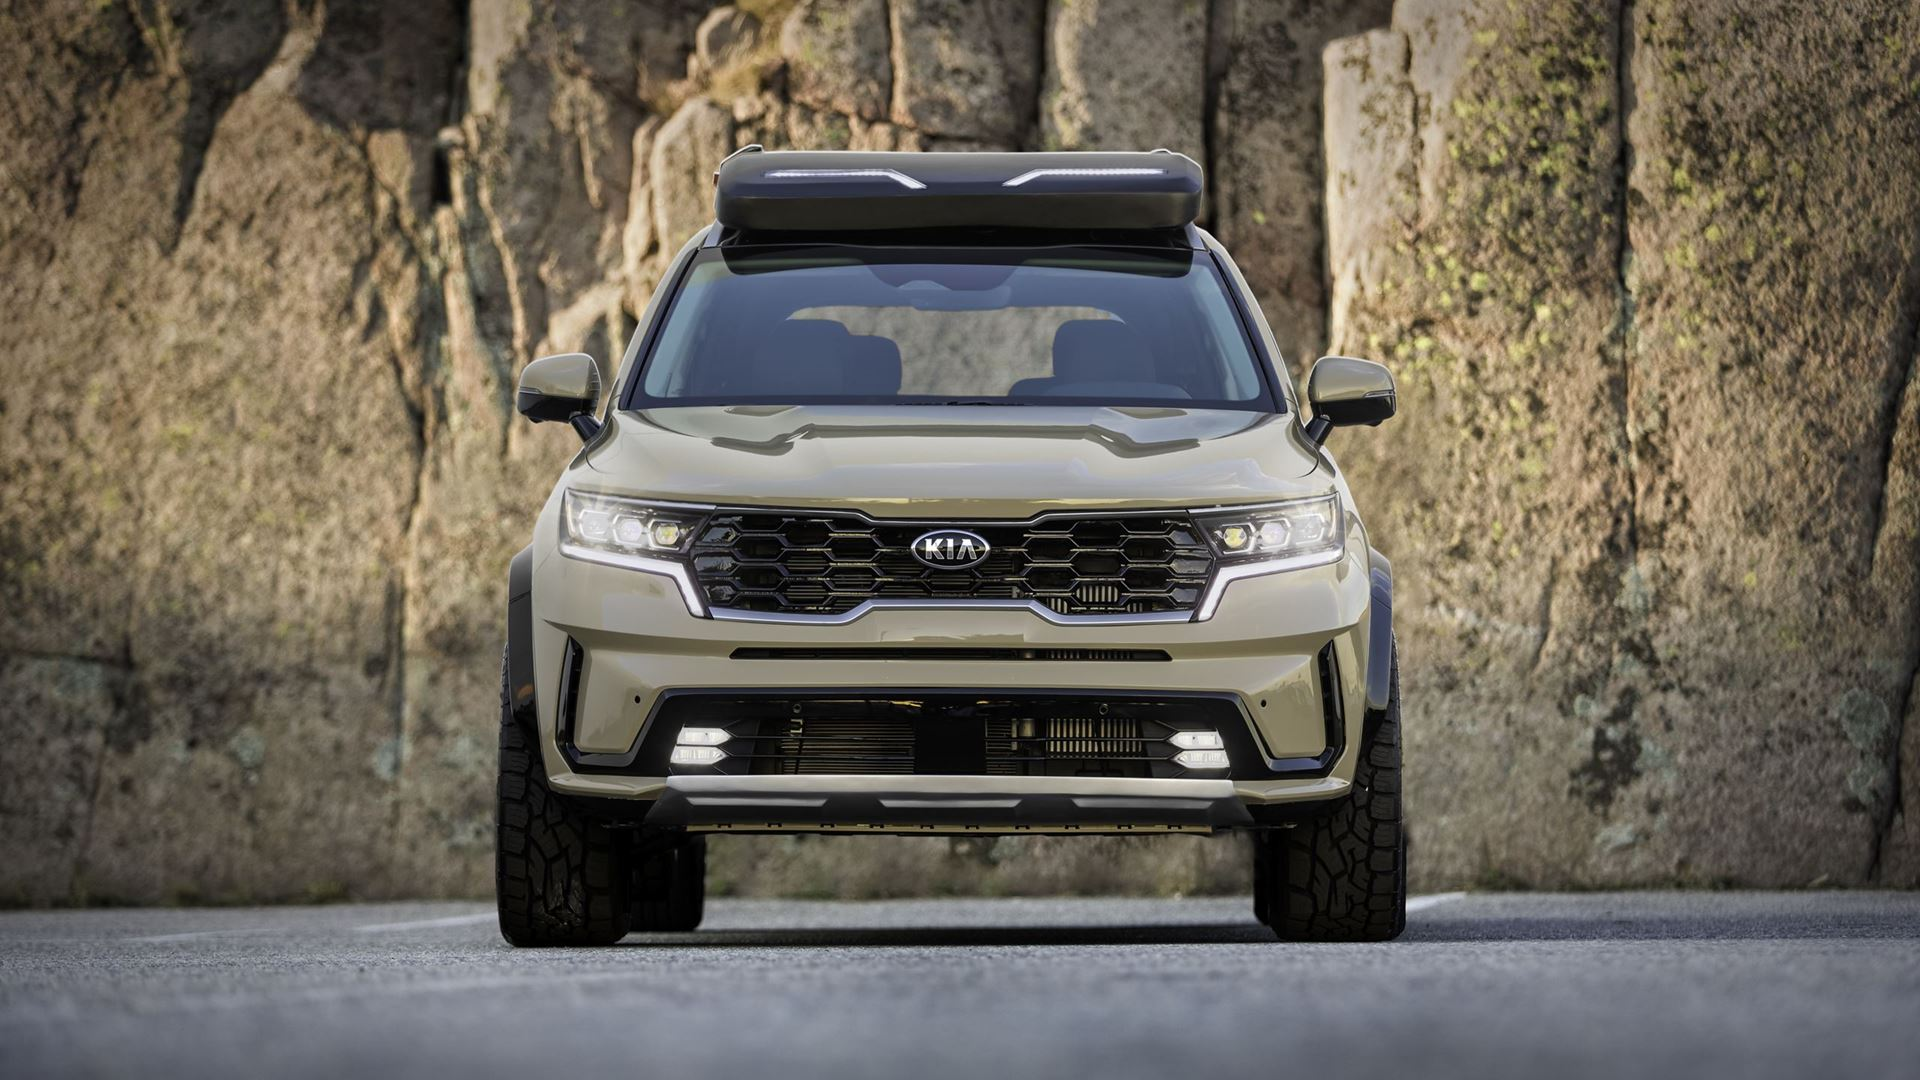 Kia unveils two rugged X-Line Sorento concepts built for the wild - Image 1